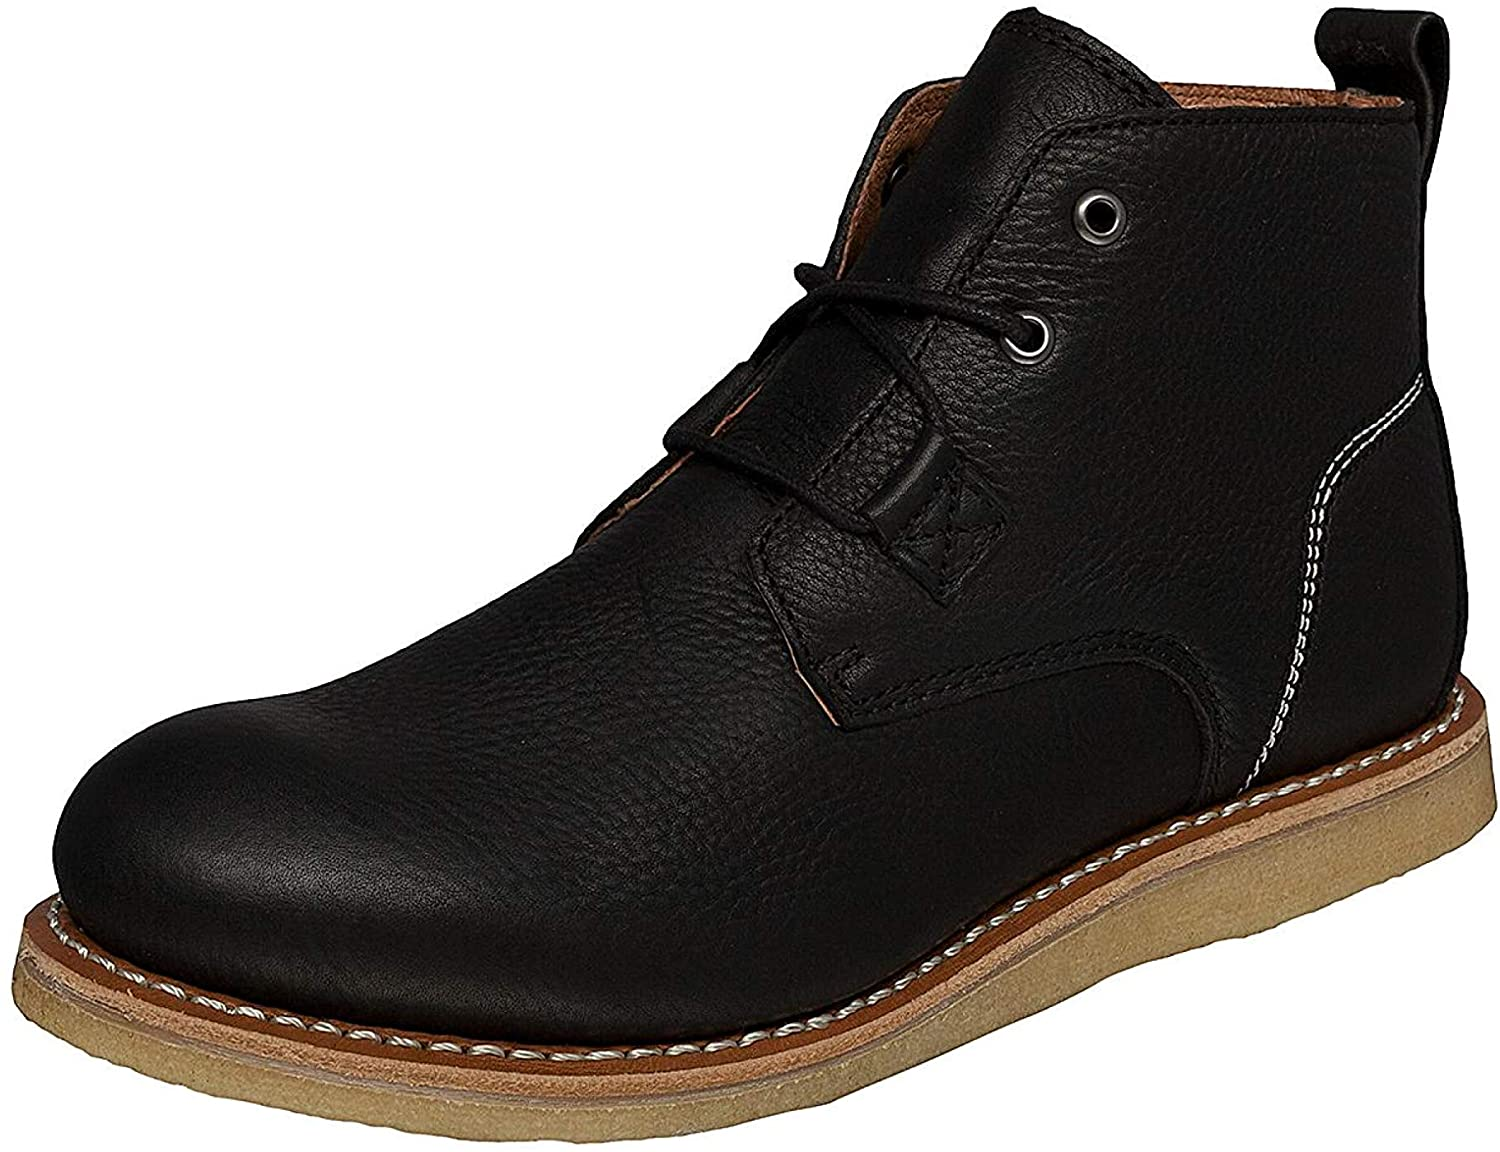 Dickies Men's Chukka Ankle Boots